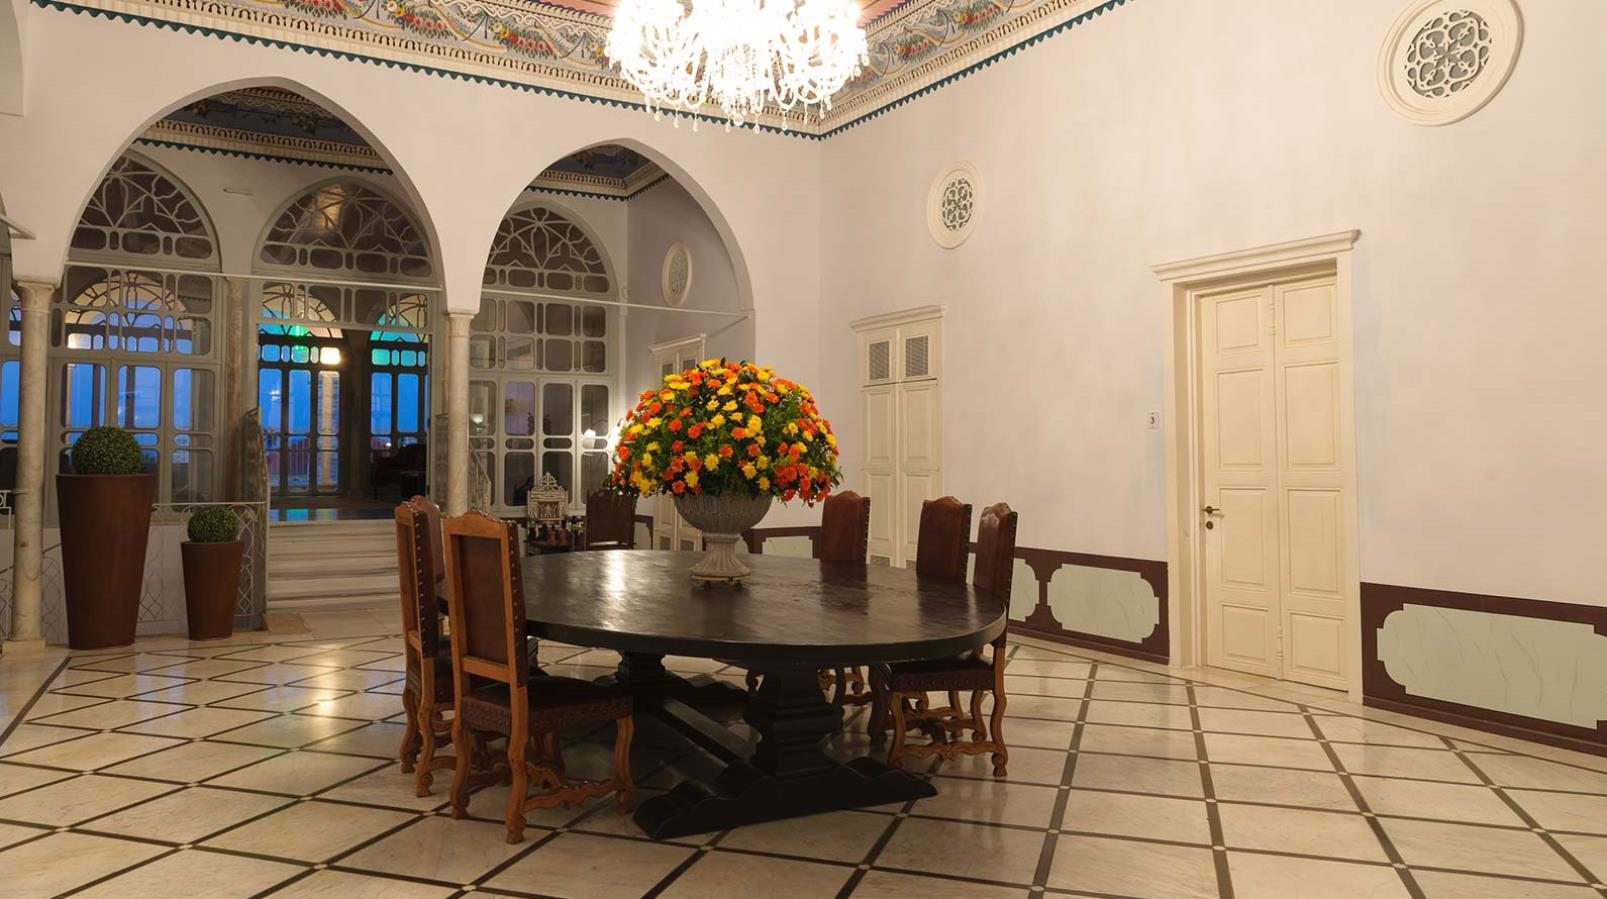 Efendi Hotel in Acre. Photo: courtesy